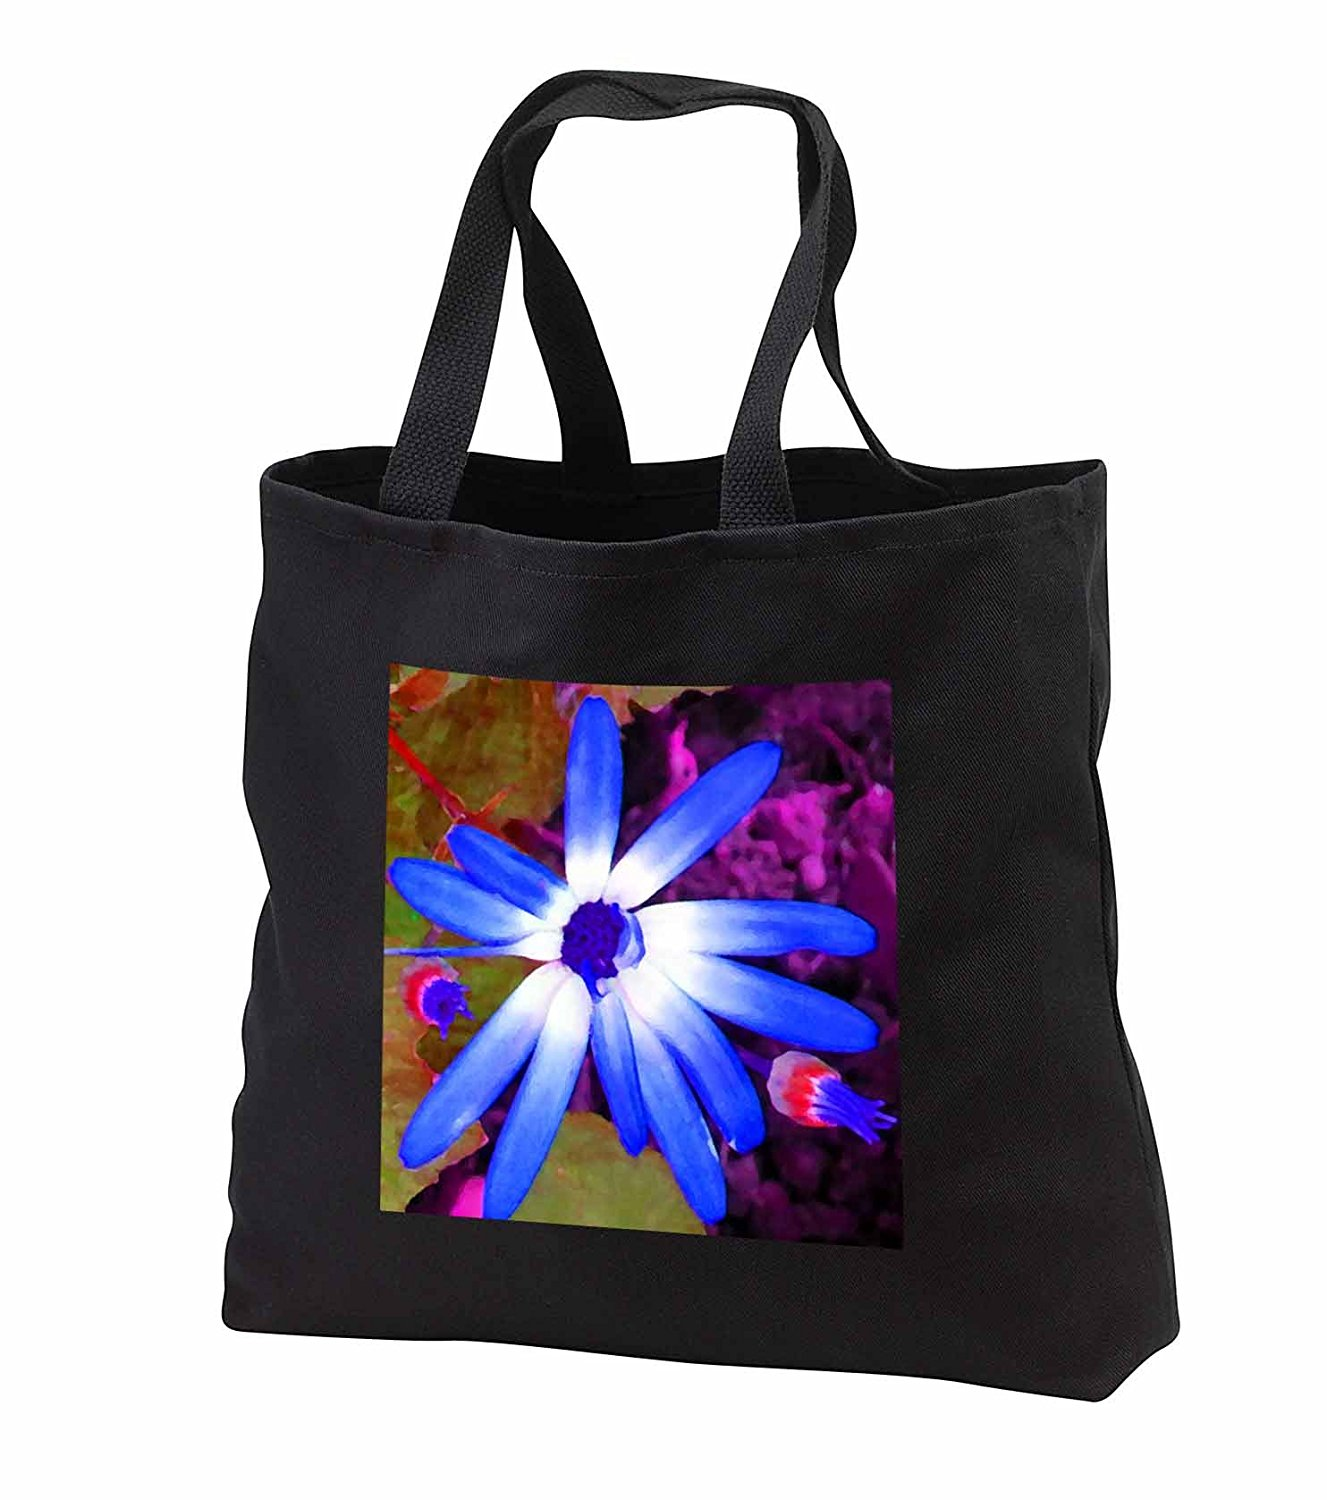 Cheap Flower Girl Tote Bags Find Flower Girl Tote Bags Deals On